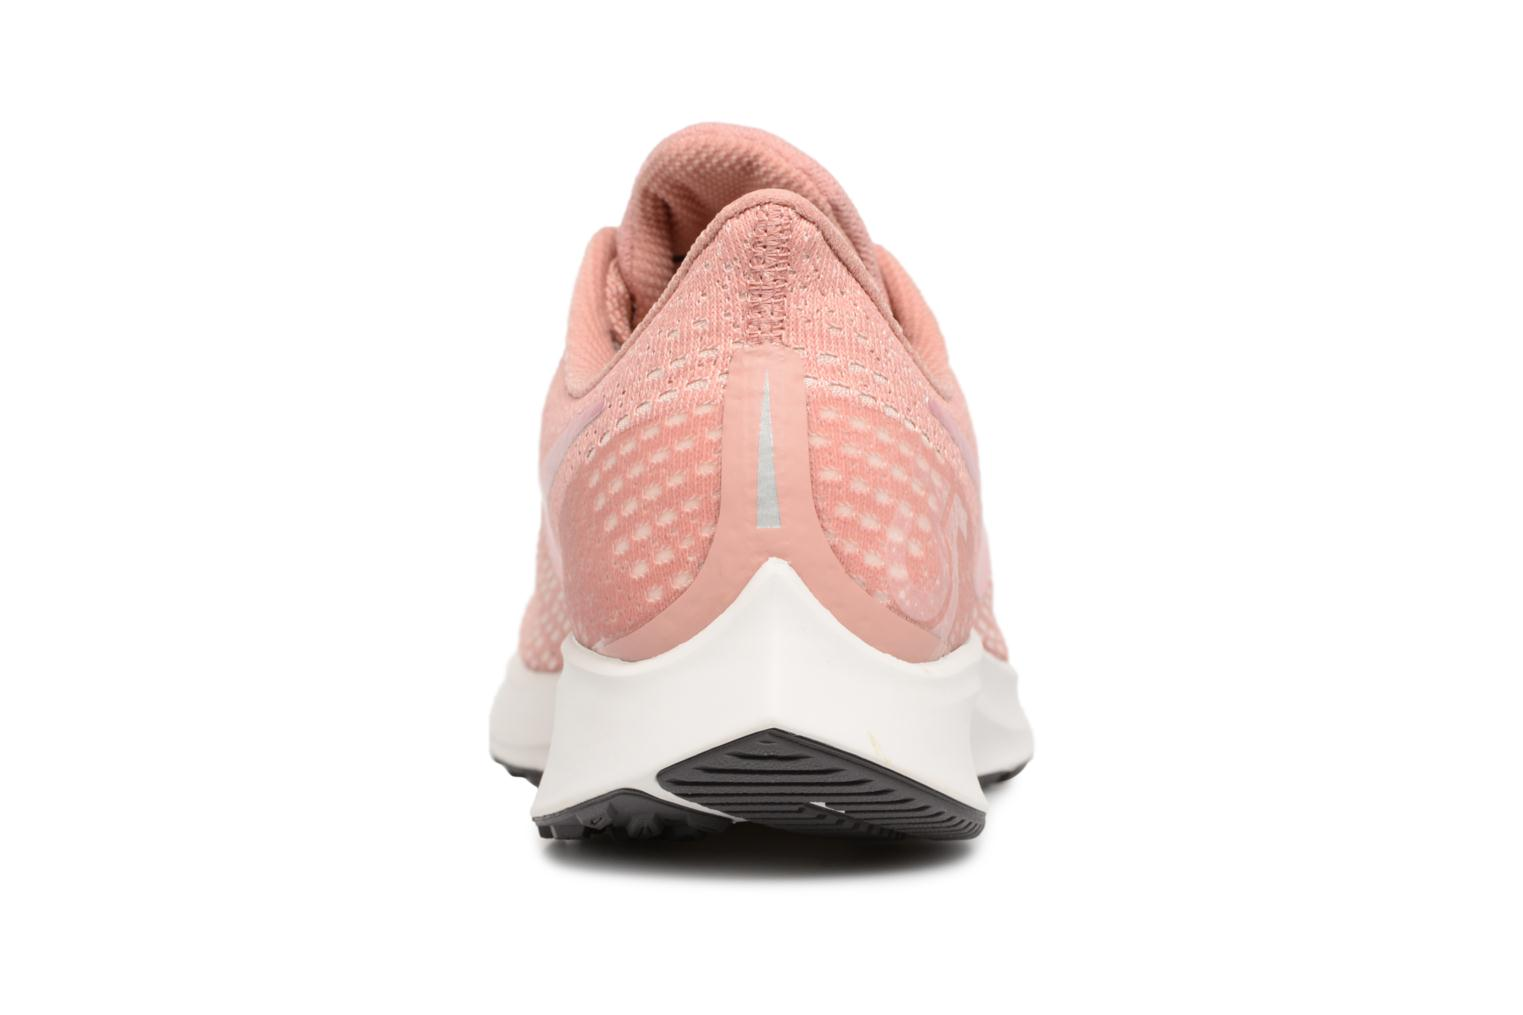 énorme réduction 7e403 b79a6 35 Zoom Pegasus Pink Nike Air Tropical Pink Nike Rust Wmns ...